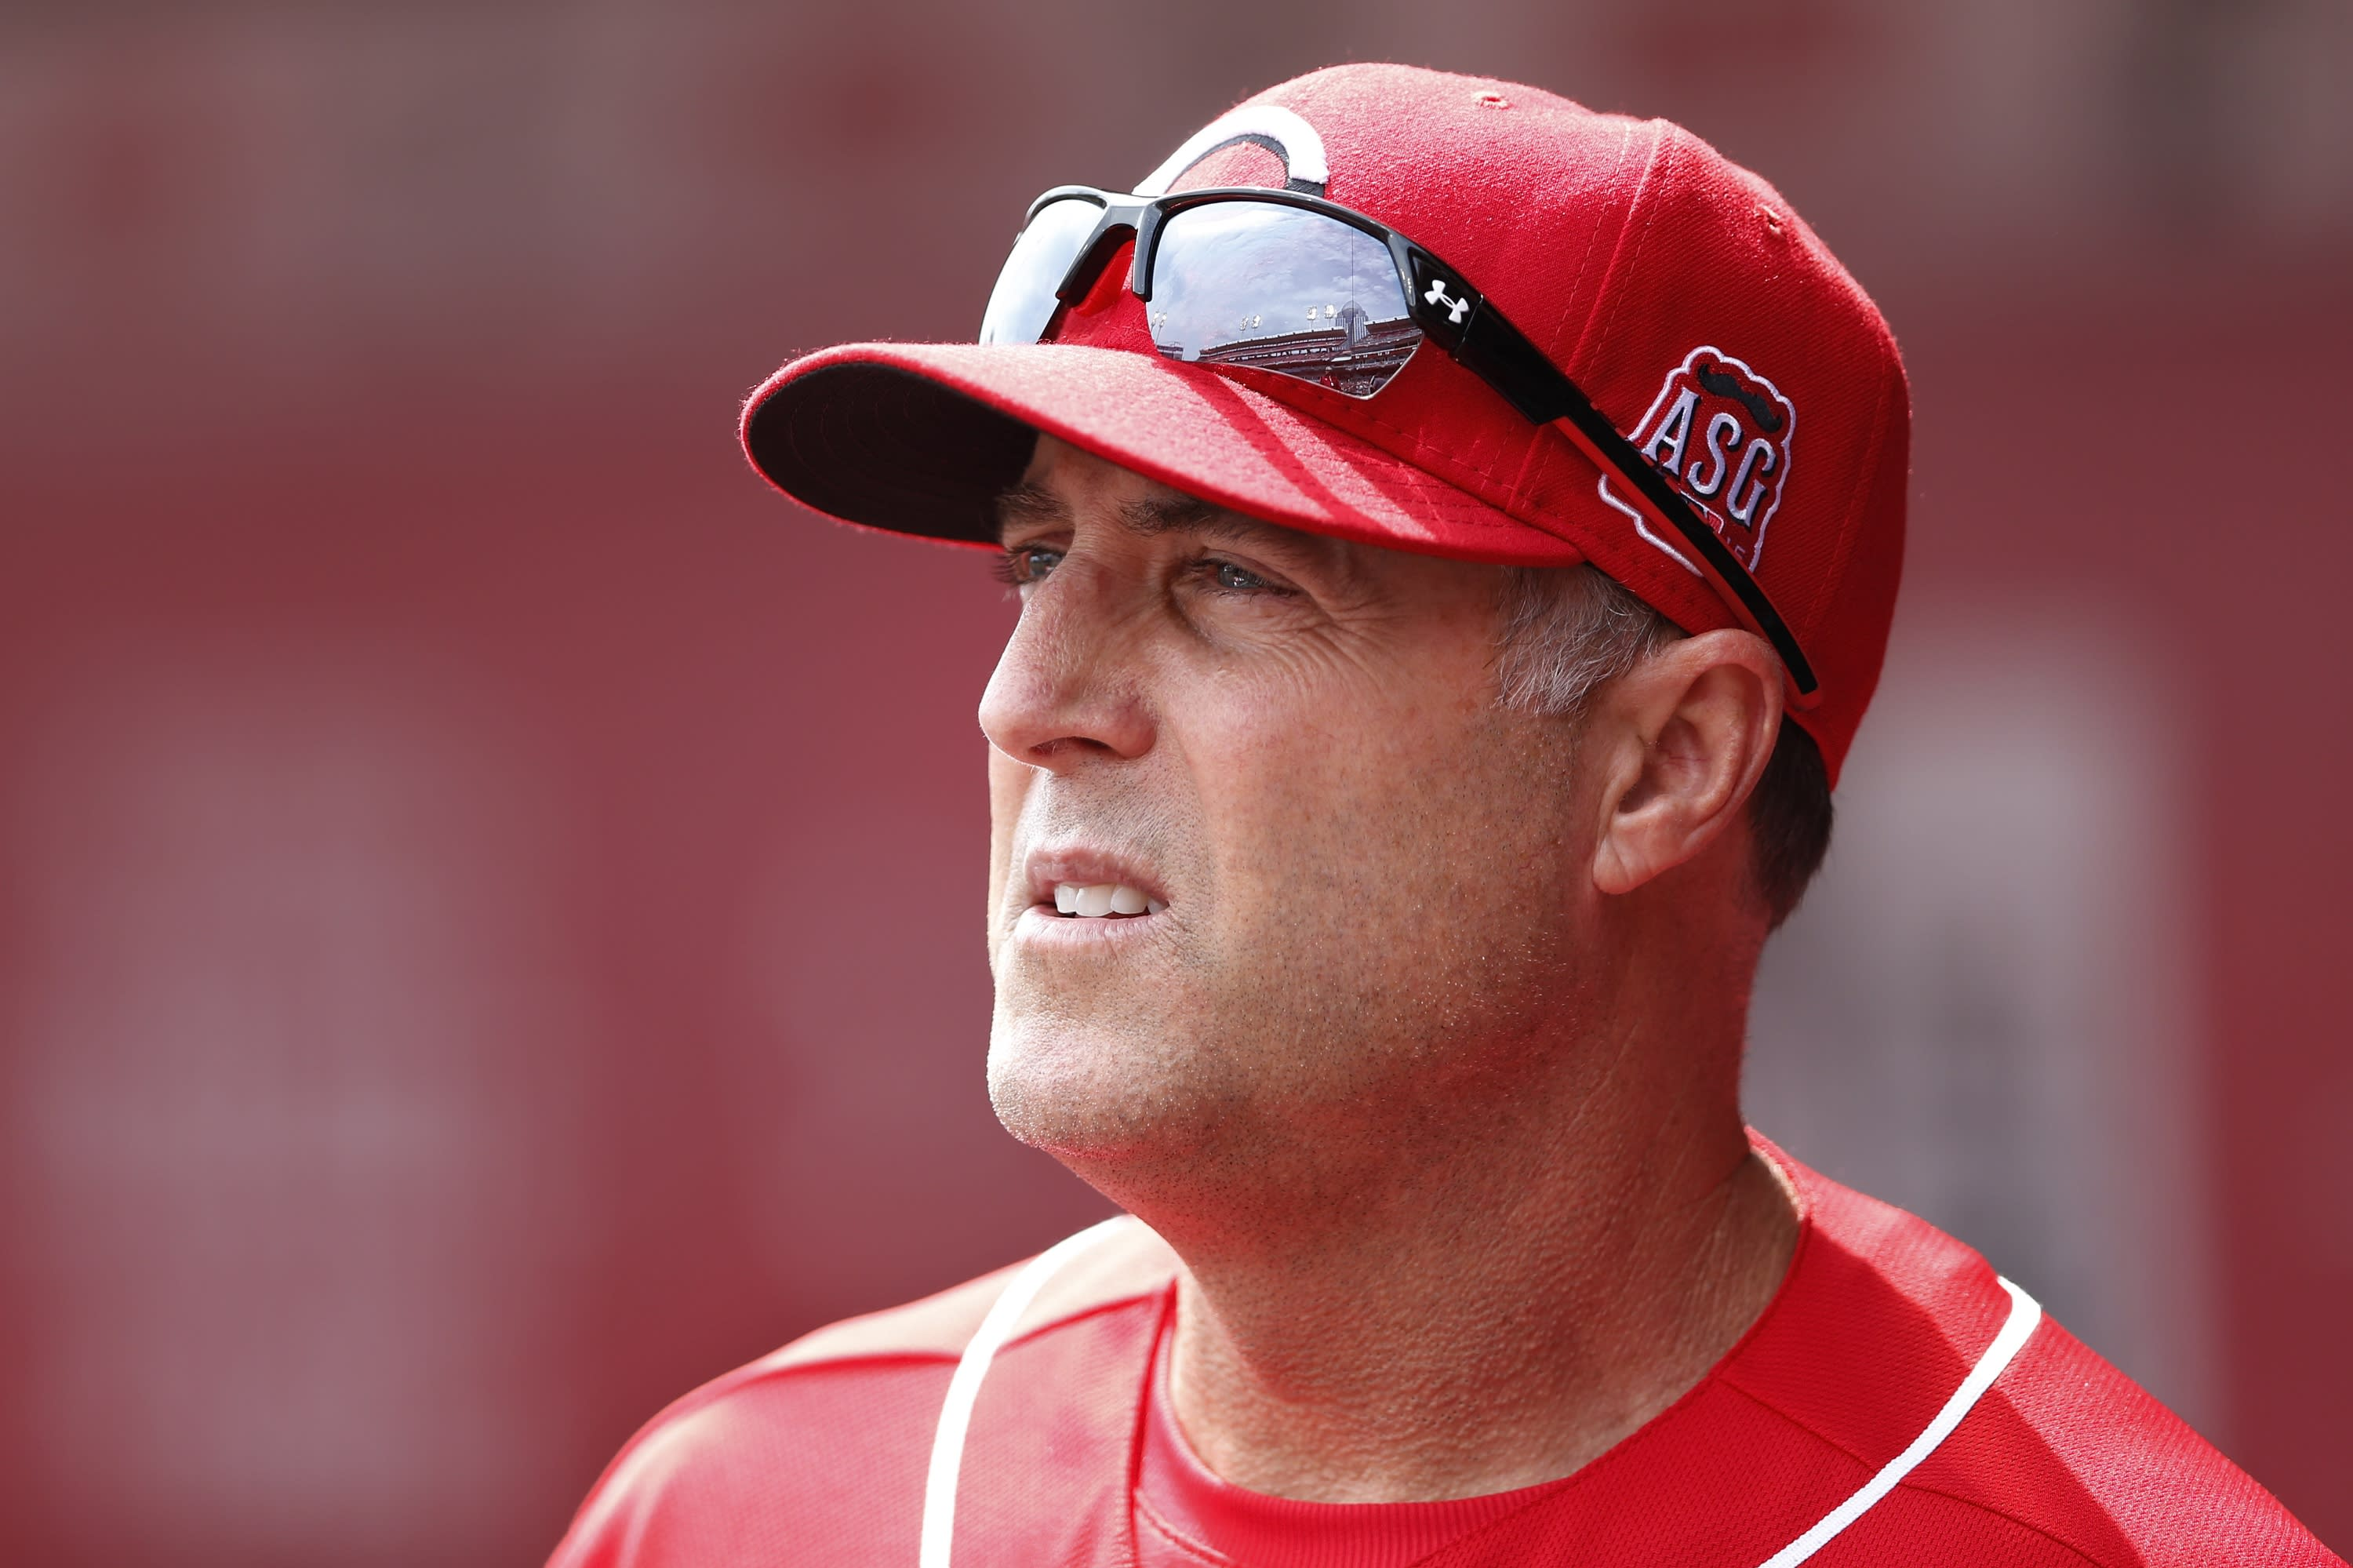 Reds manager Bryan Price unleashes 77 F-bombs in epic tirade against media